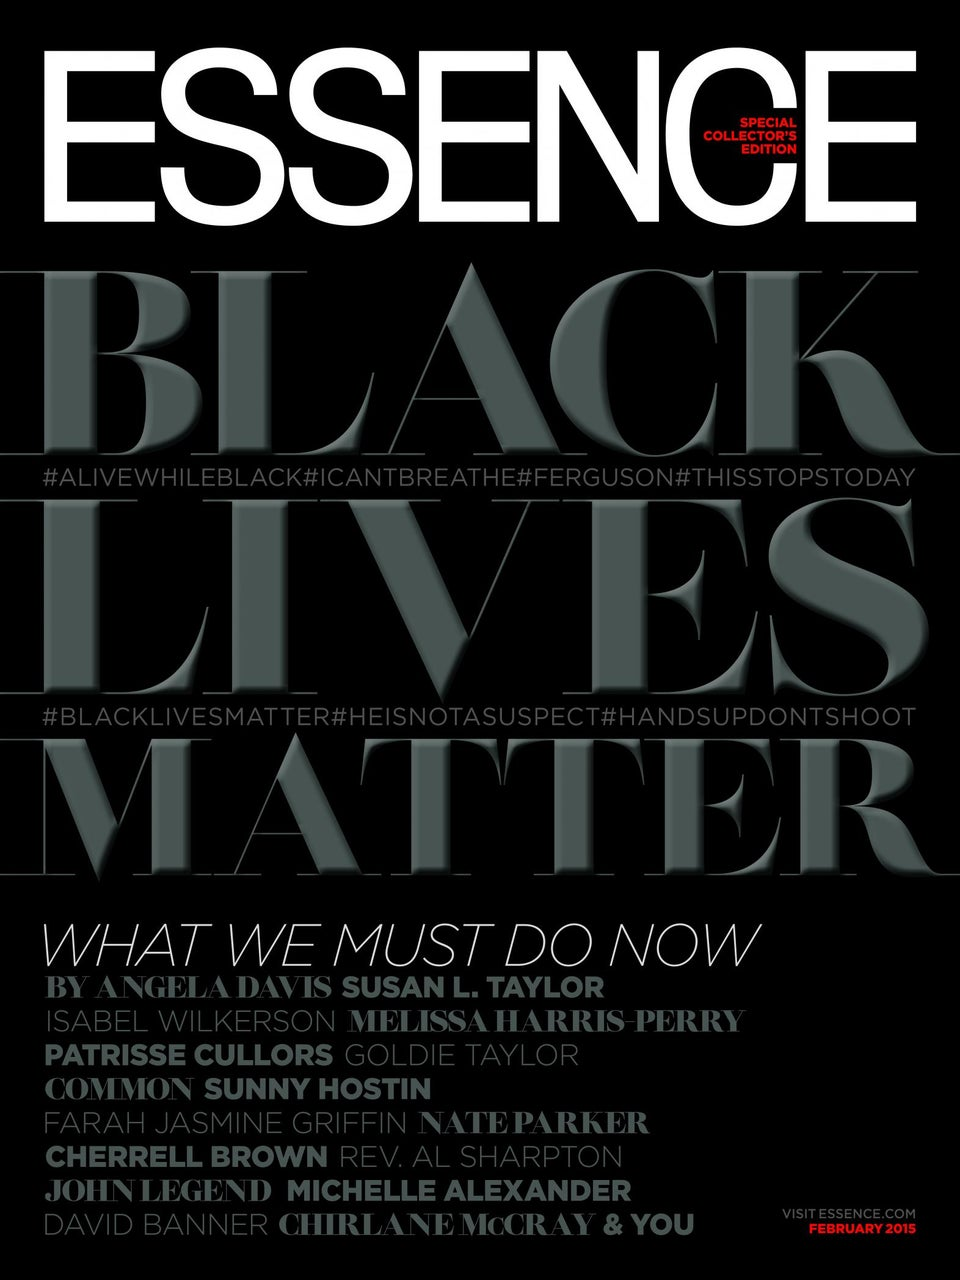 Let Your Voice Be Heard at ESSENCE Fest's First-Ever 'Peace, Prayer & Purpose' Rally